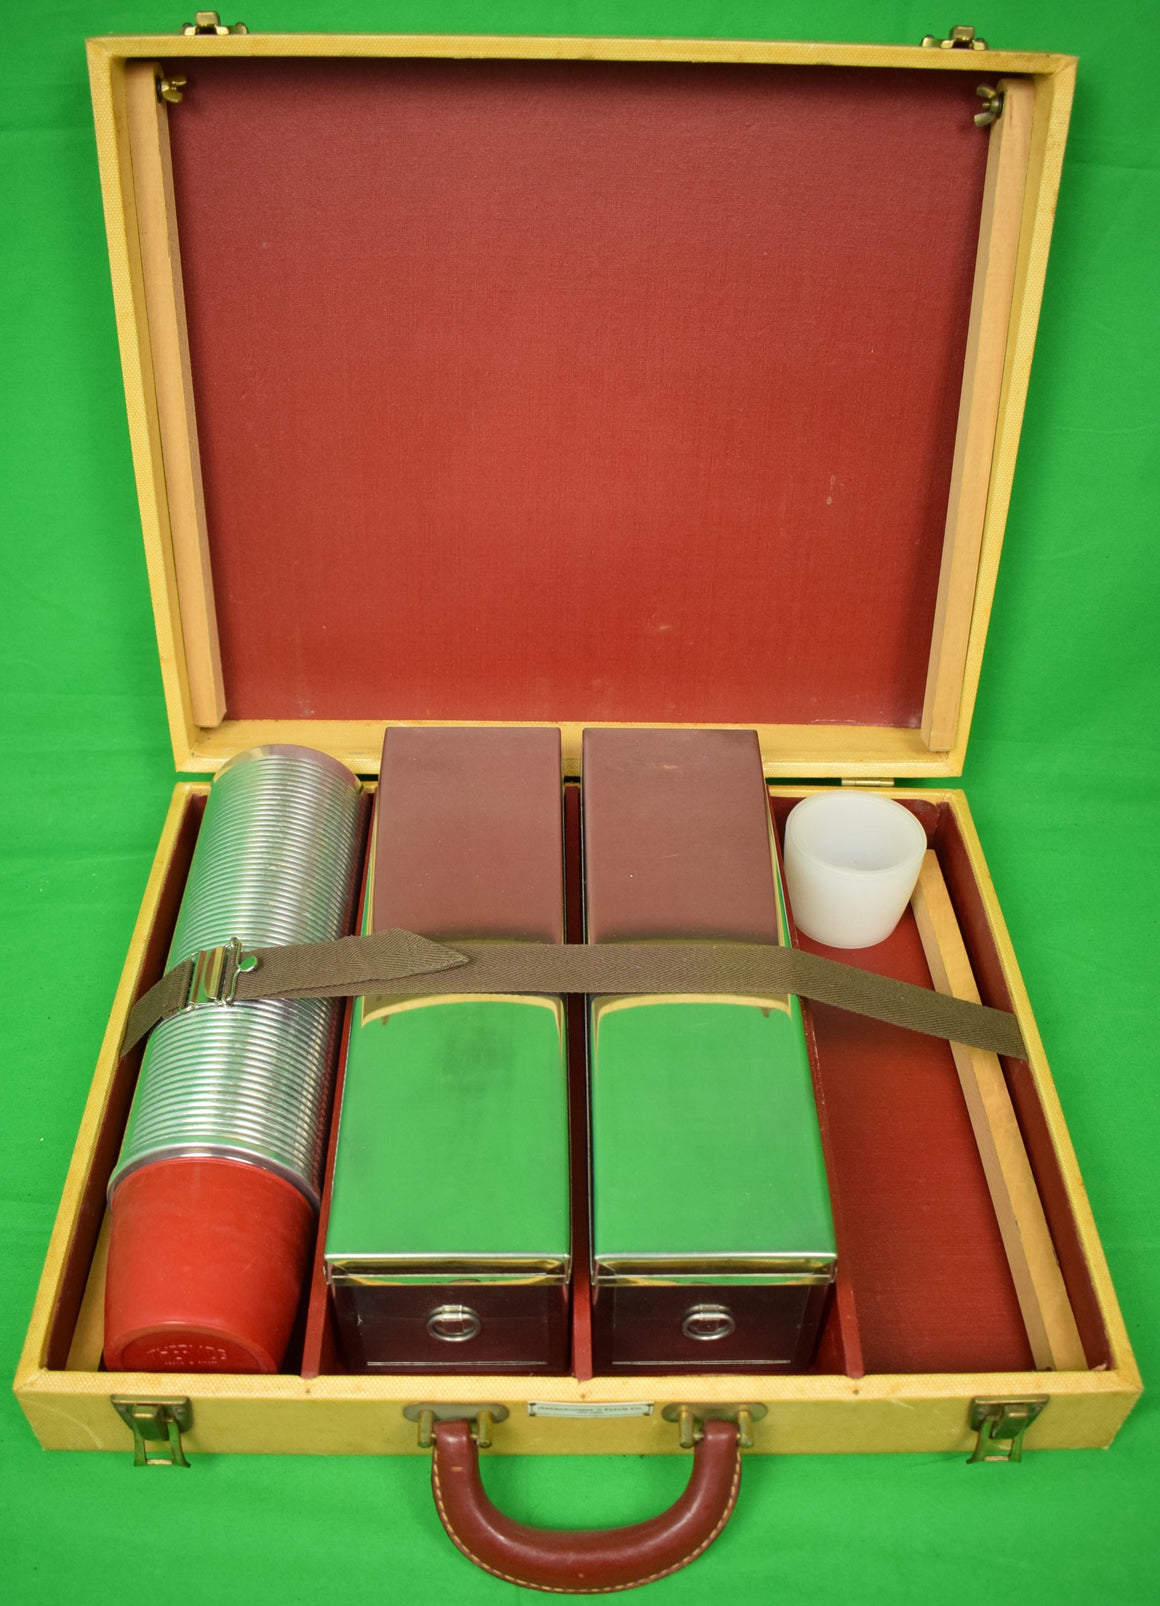 Abercrombie & Fitch Picnic Case/ Table w/ Thermos Canister & 2 Biscuit Tins